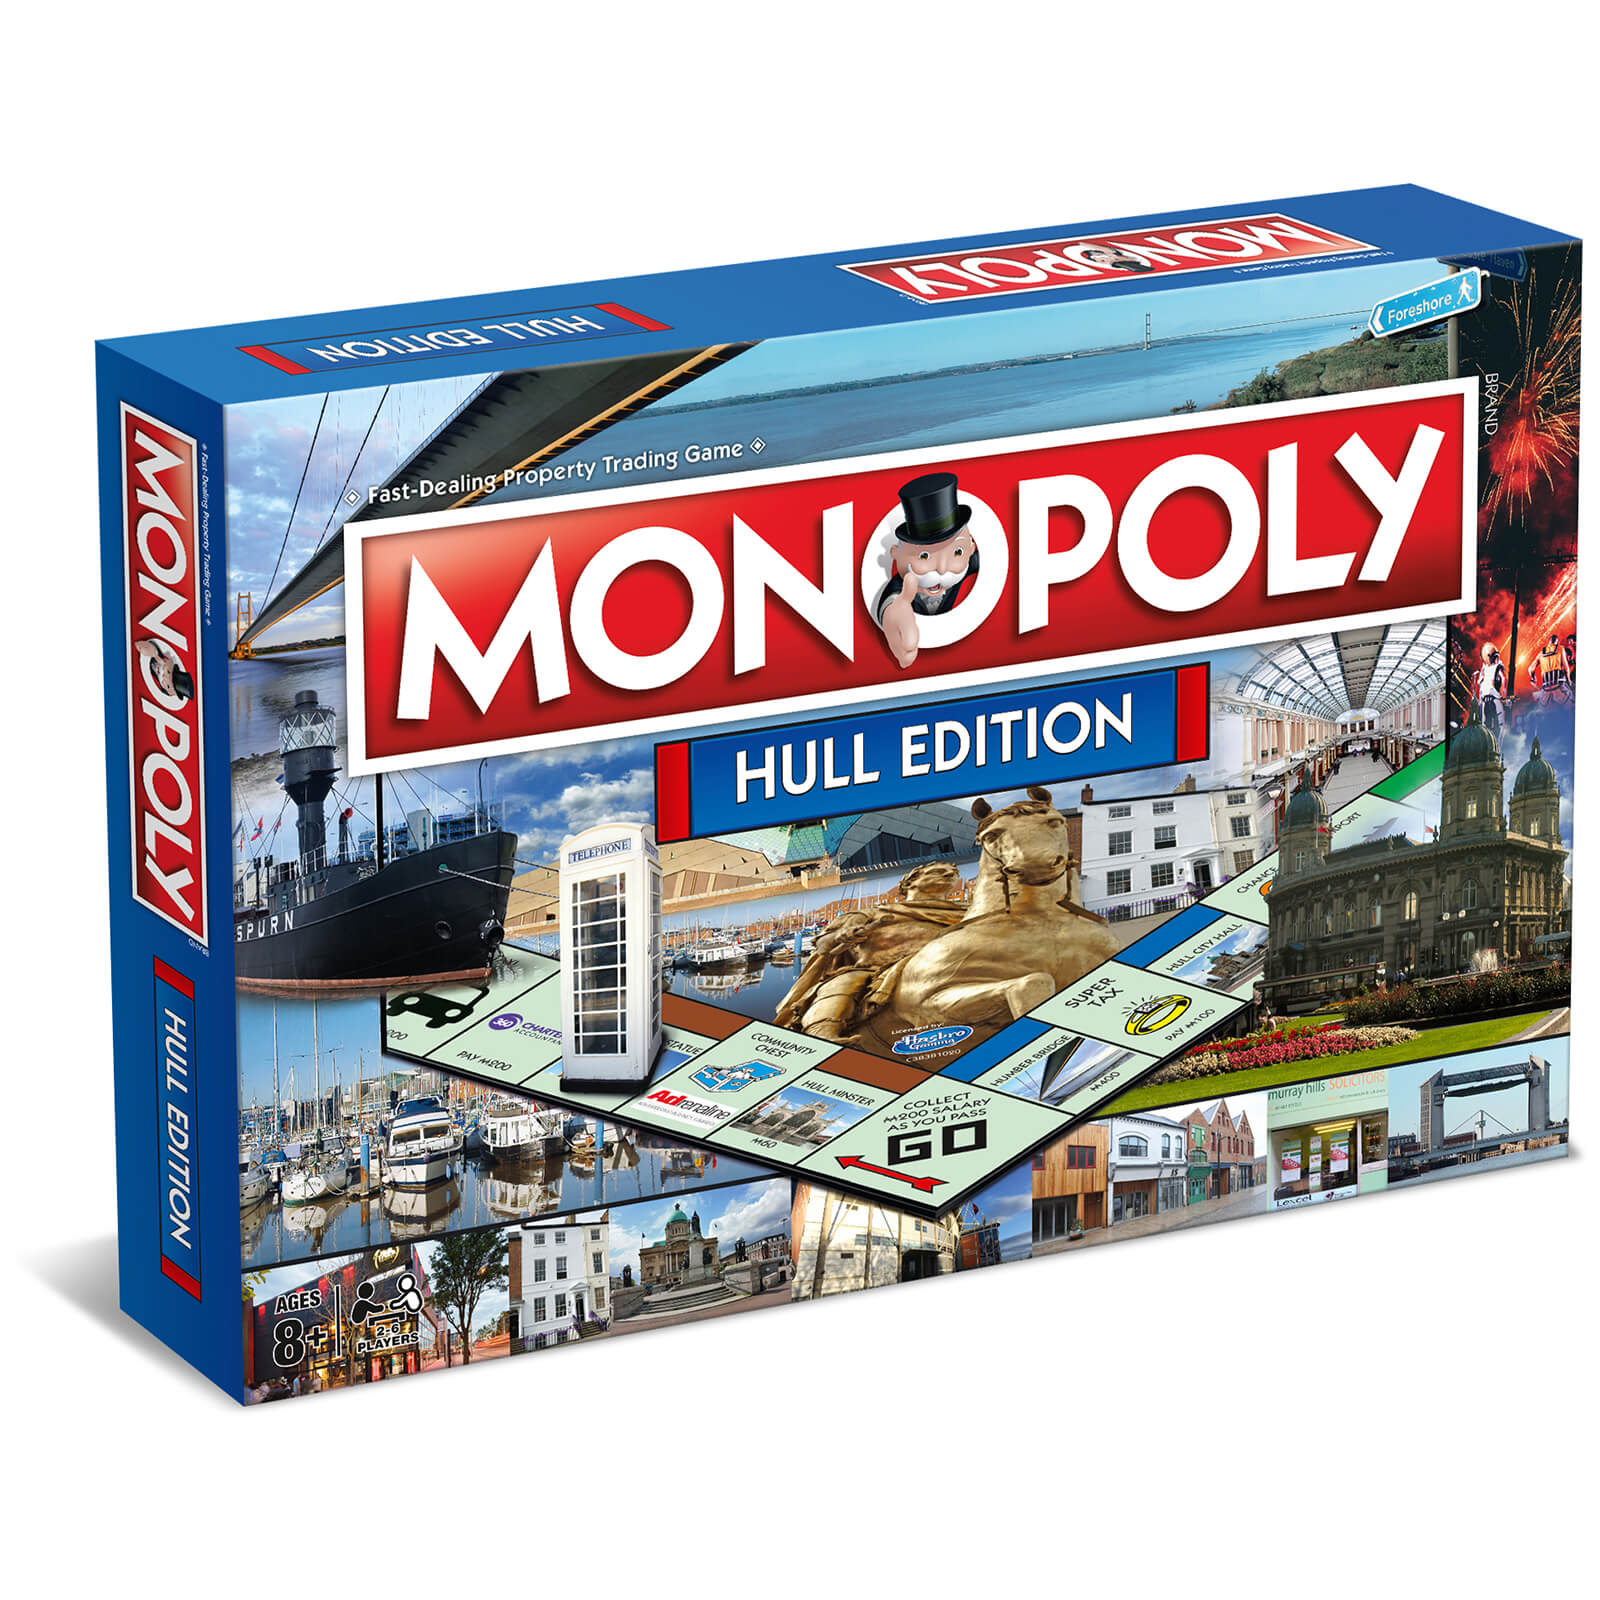 Image of Monopoly Board Game - Hull Edition